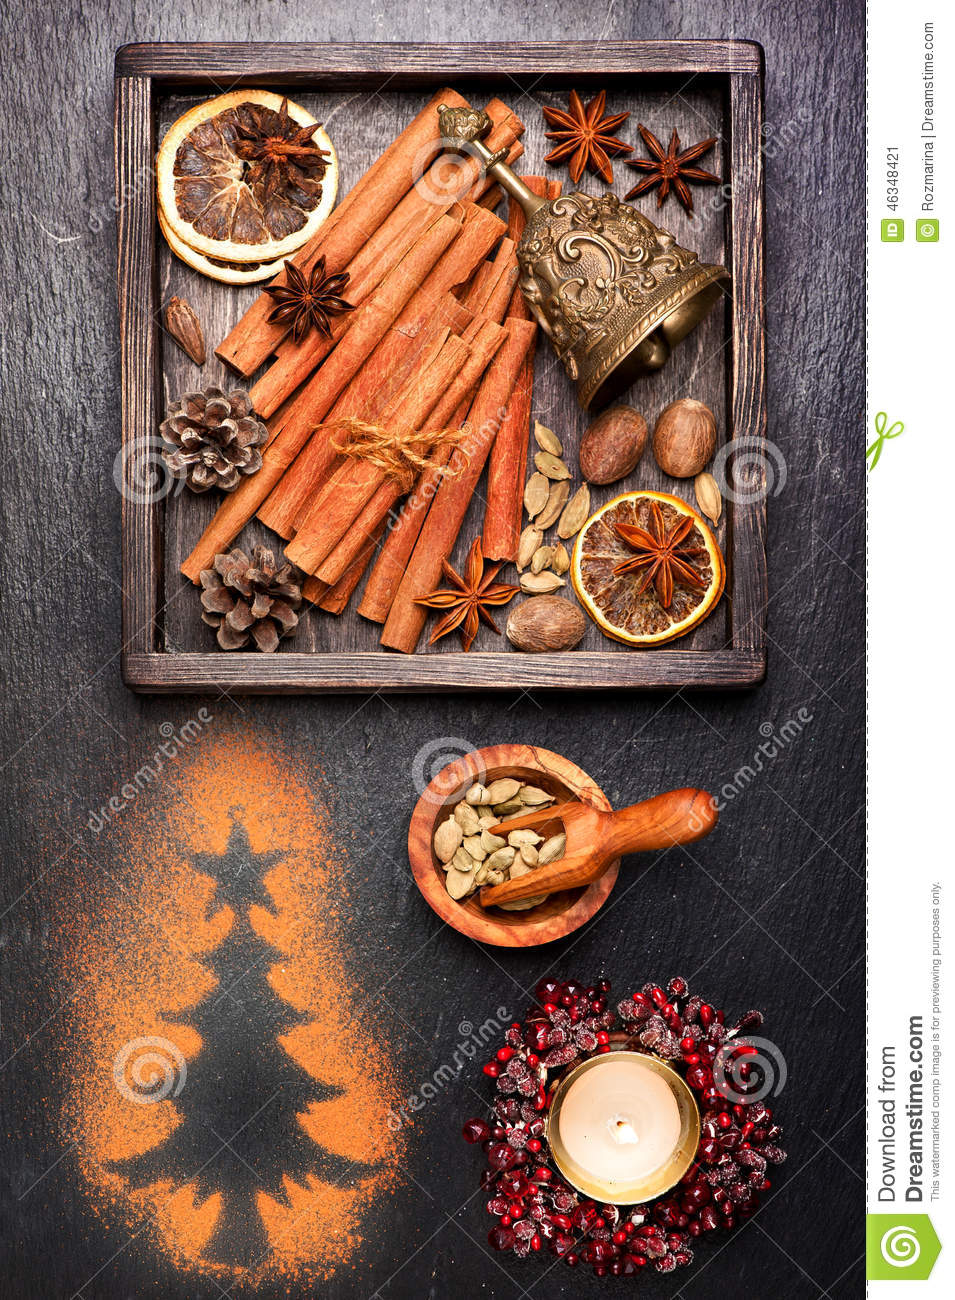 Vintage christmas cards decorations and spices for baking for Baking oranges for christmas decoration